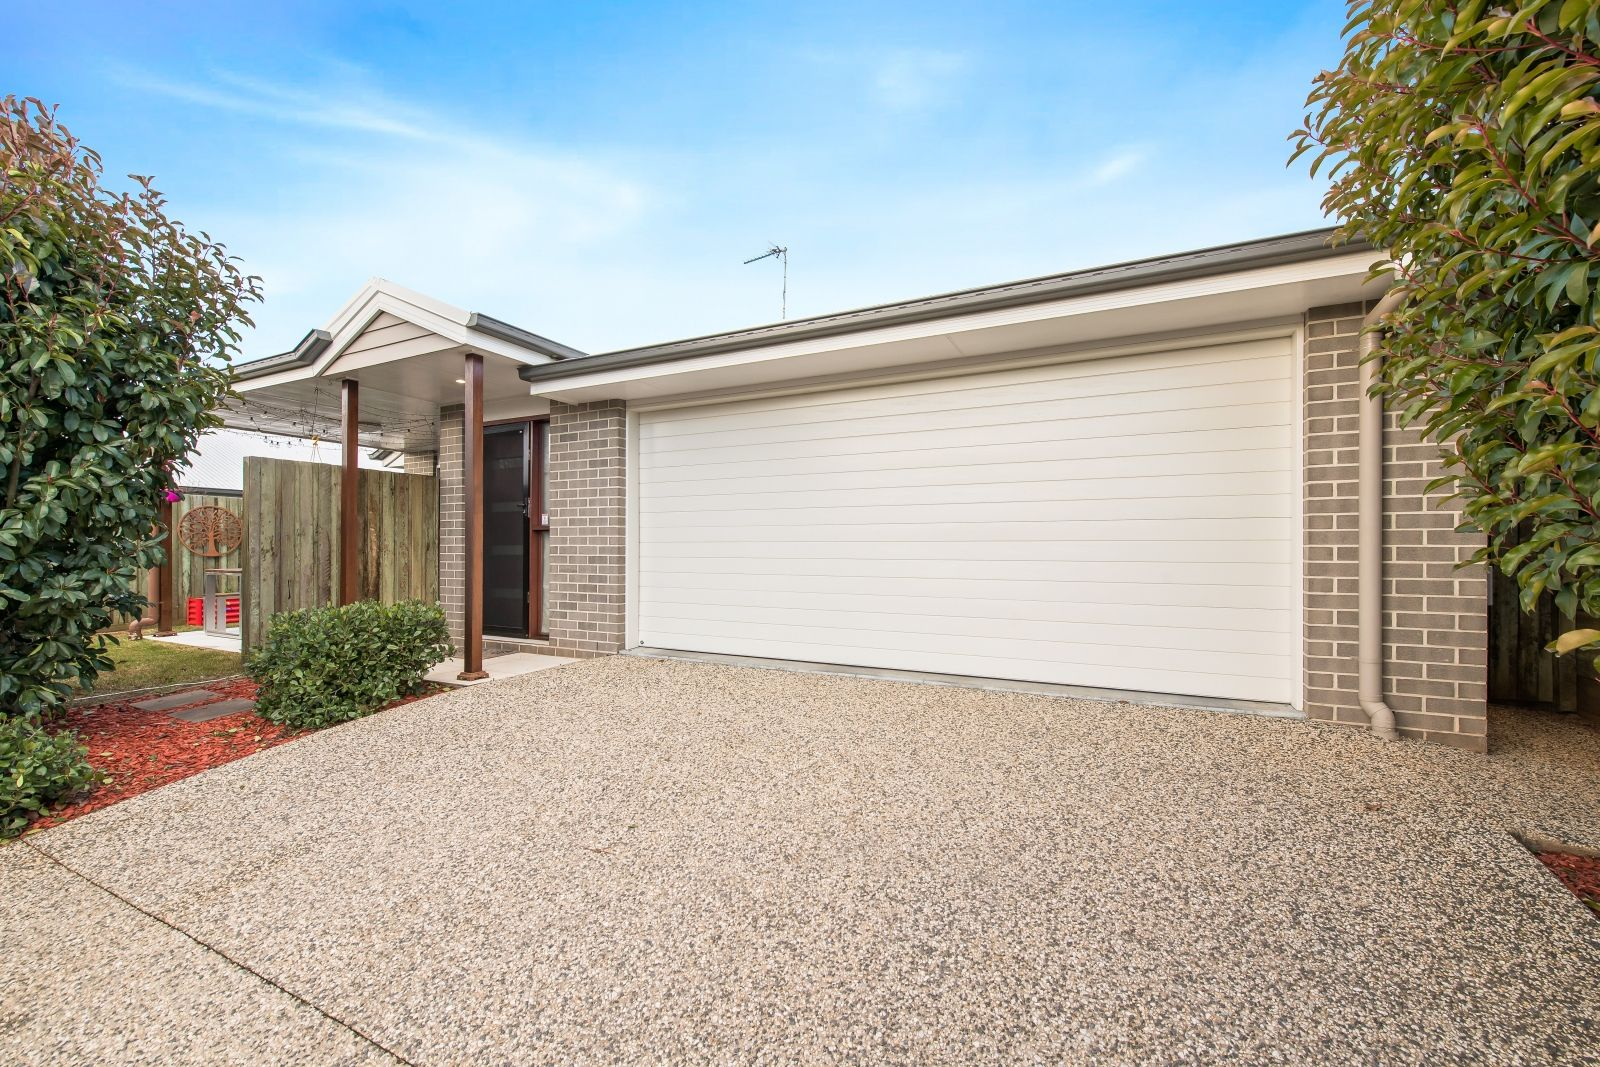 2/418 Hume St, Centenary Heights QLD 4350, Image 0